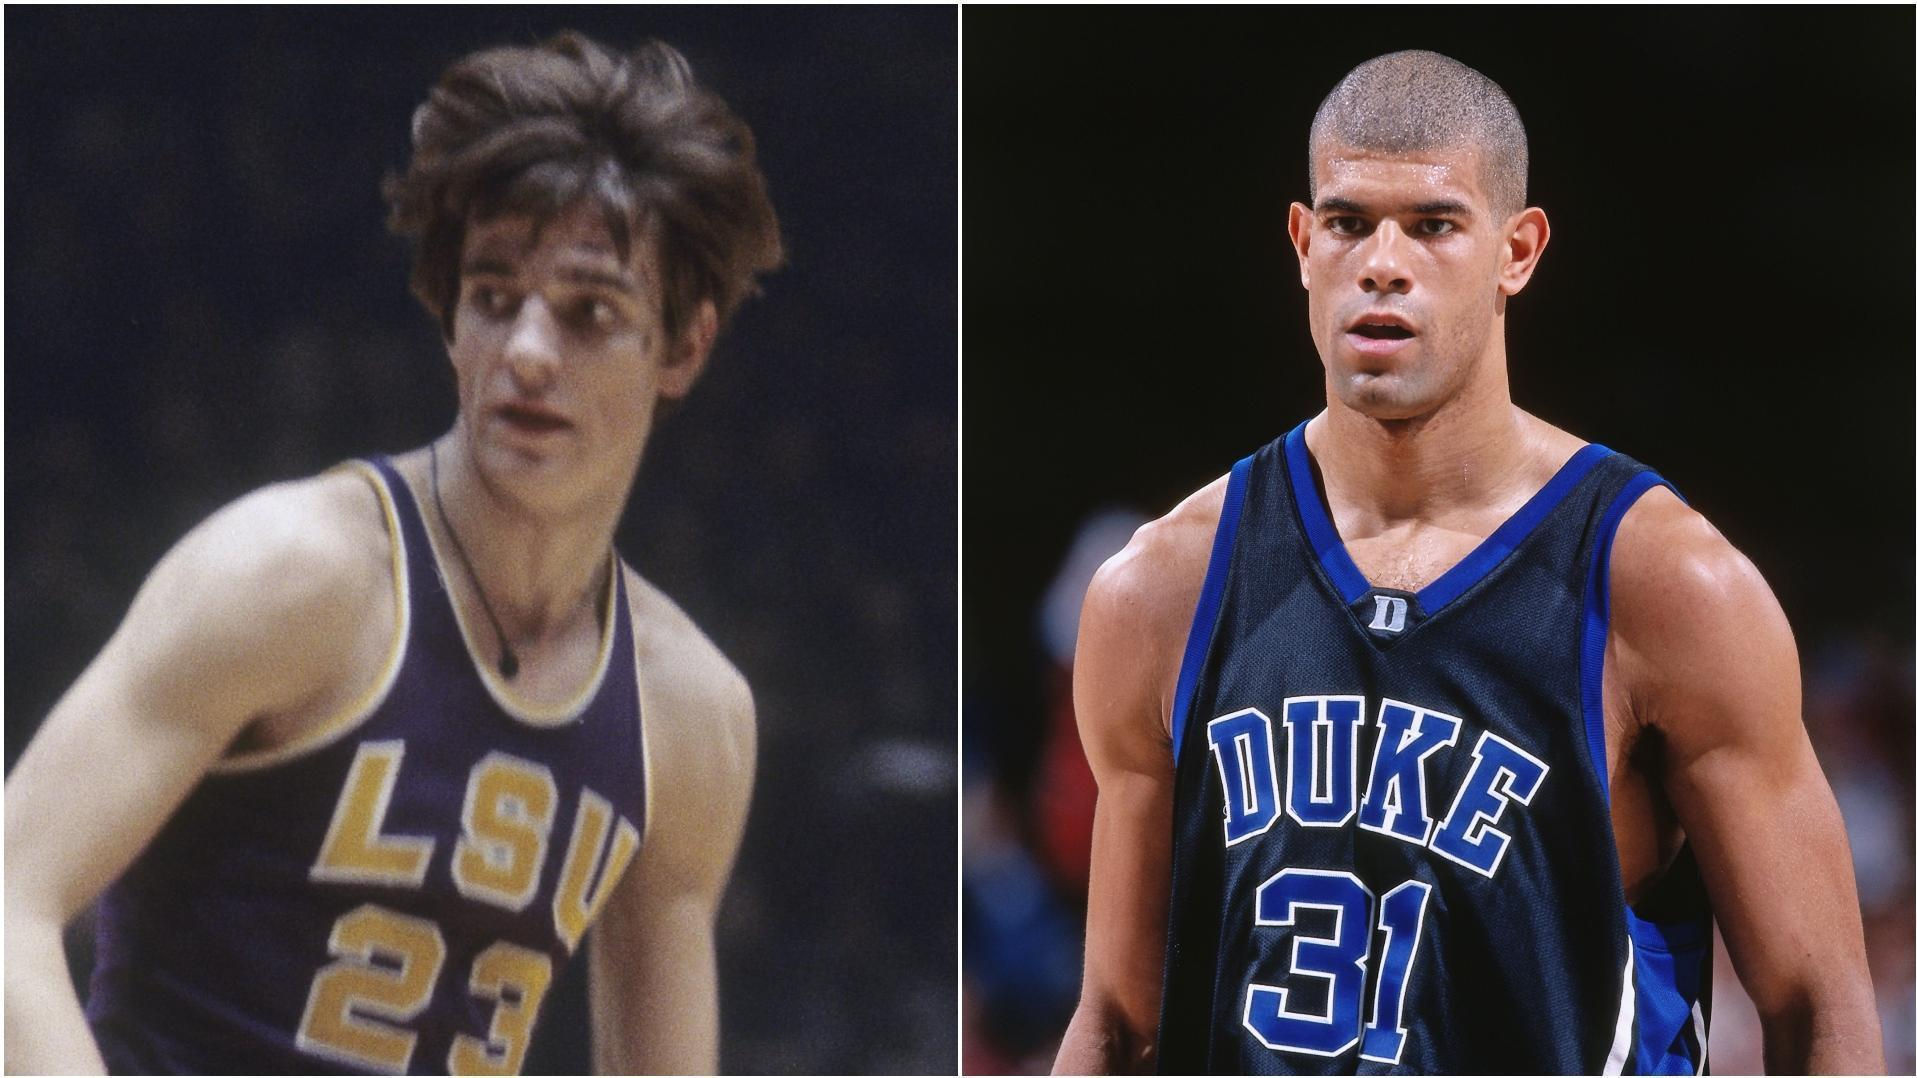 Can Battier take down Maravich in bracket matchup?